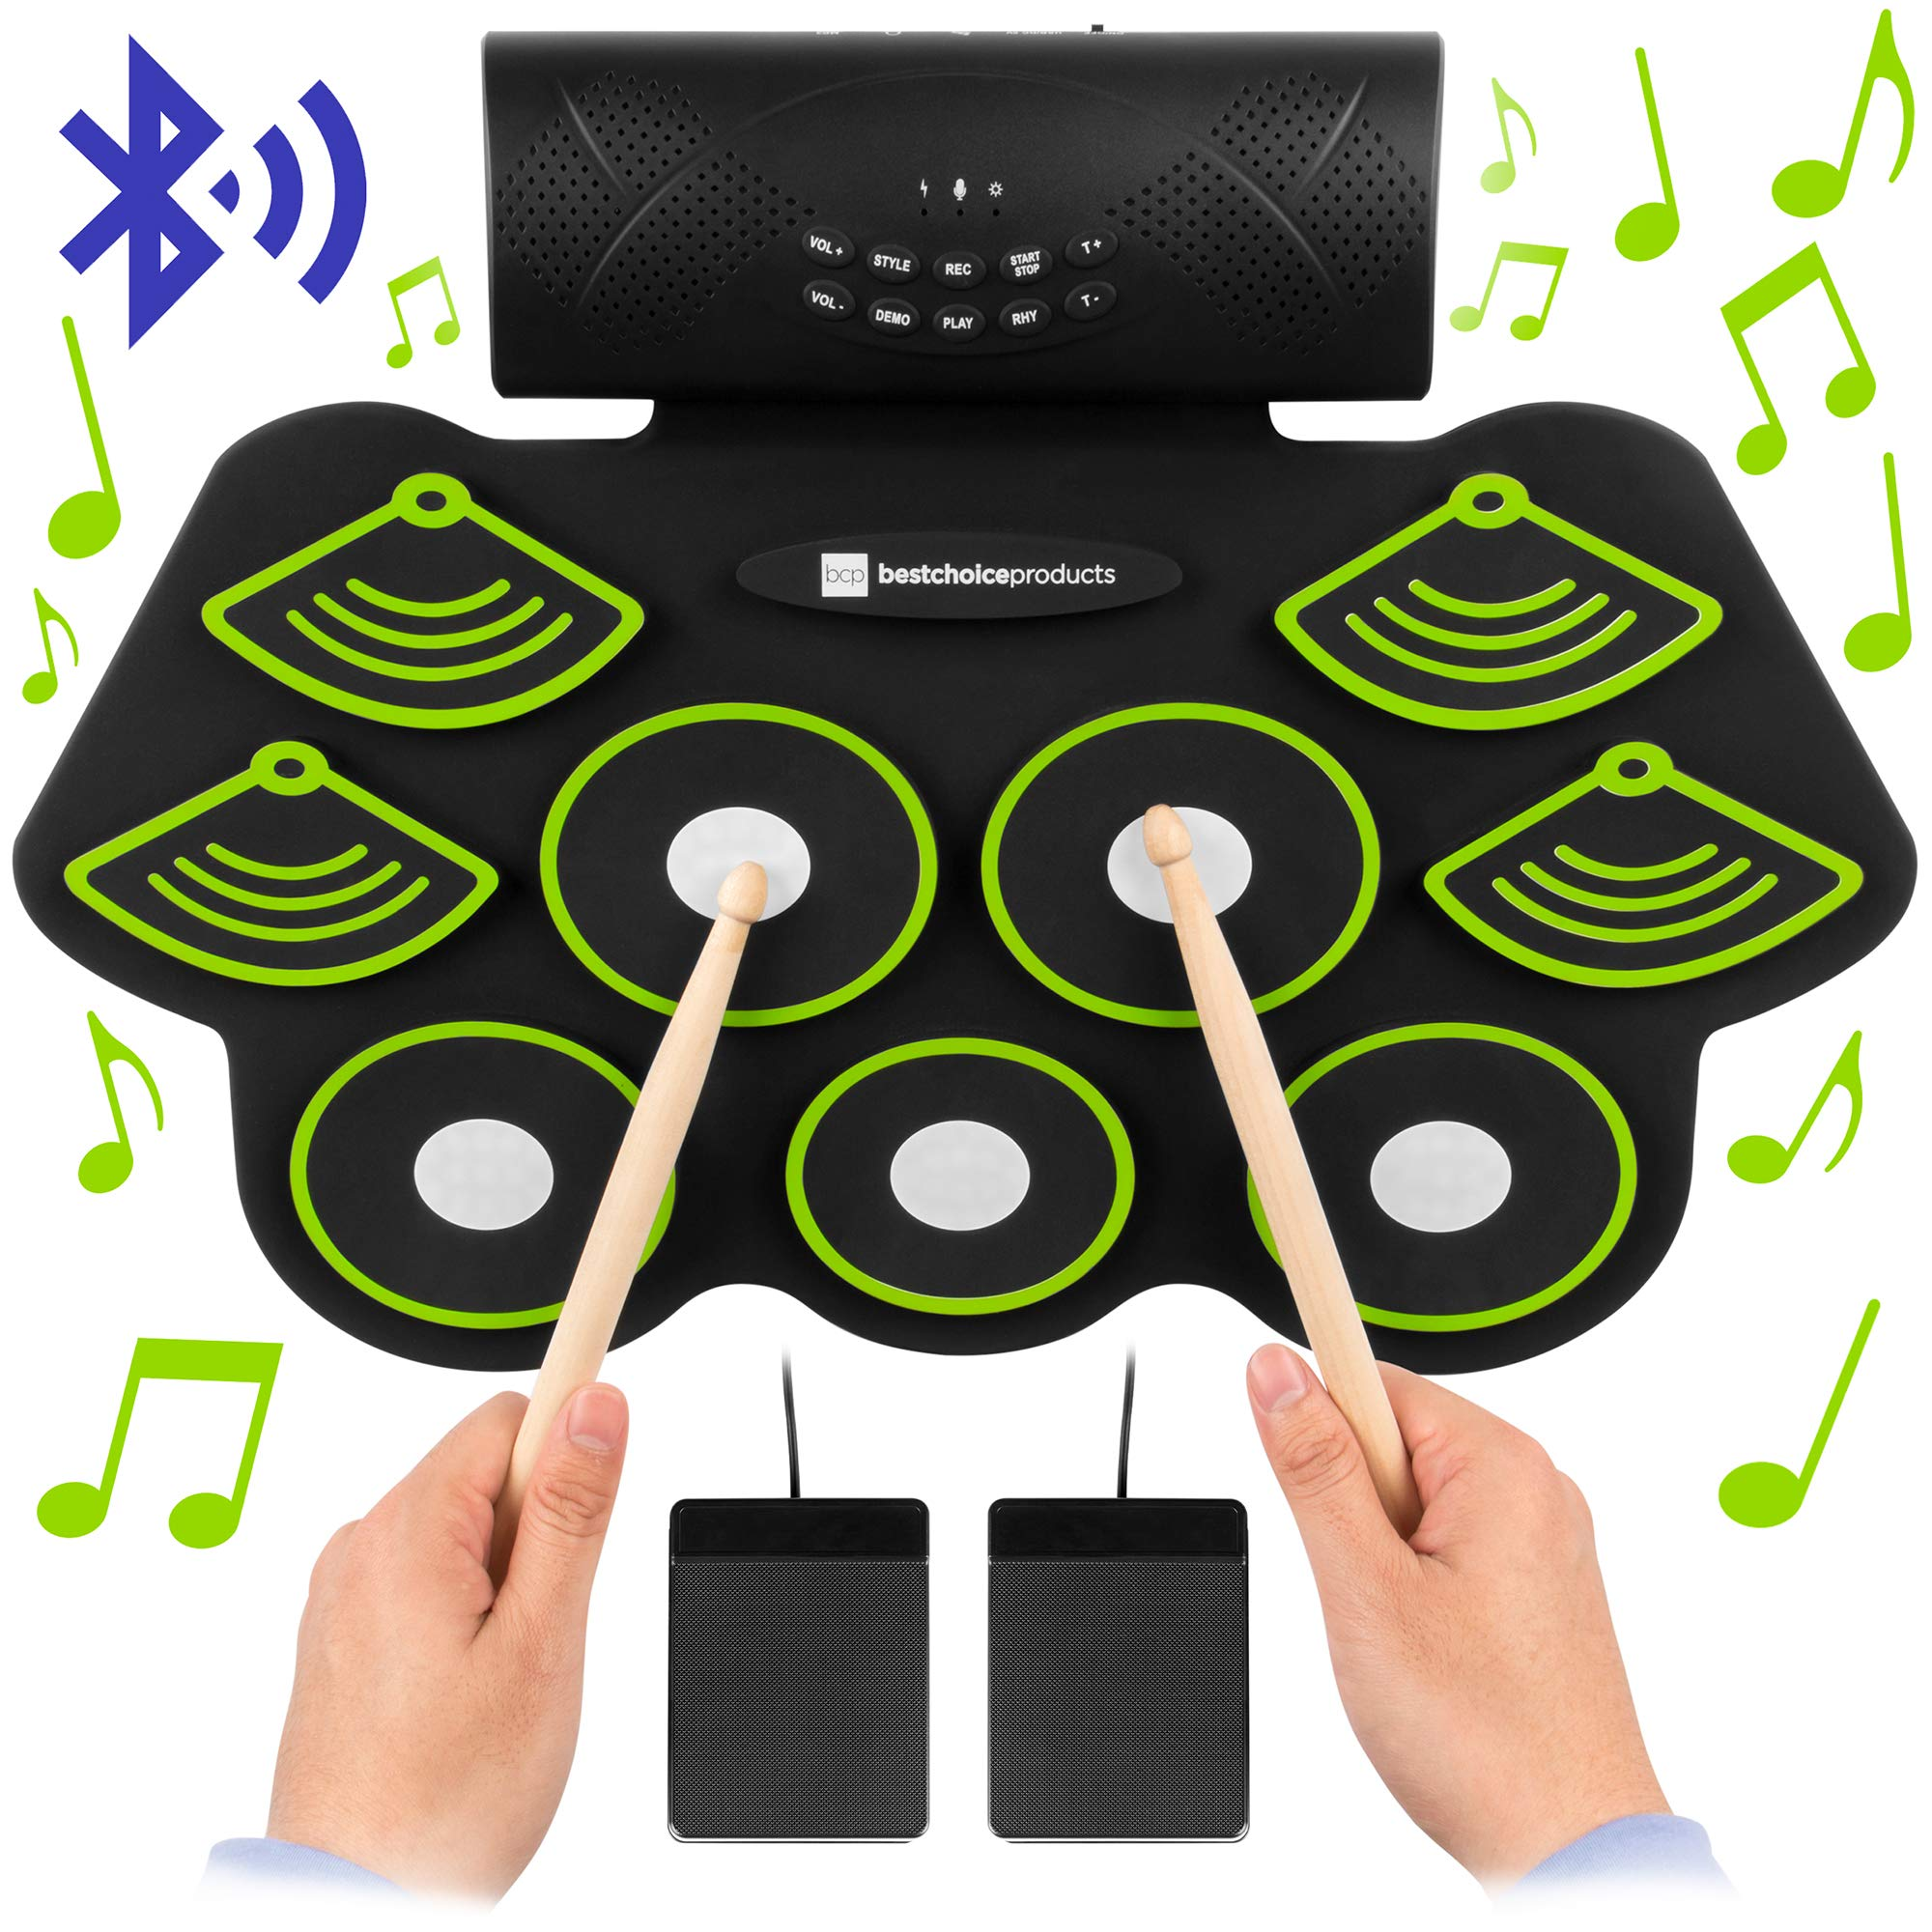 Best Choice Products 9 Pad Roll Up Bluetooth Electric Drum Set w/Headphone Jack, Speaker, Pedals, Rechargeable Battery